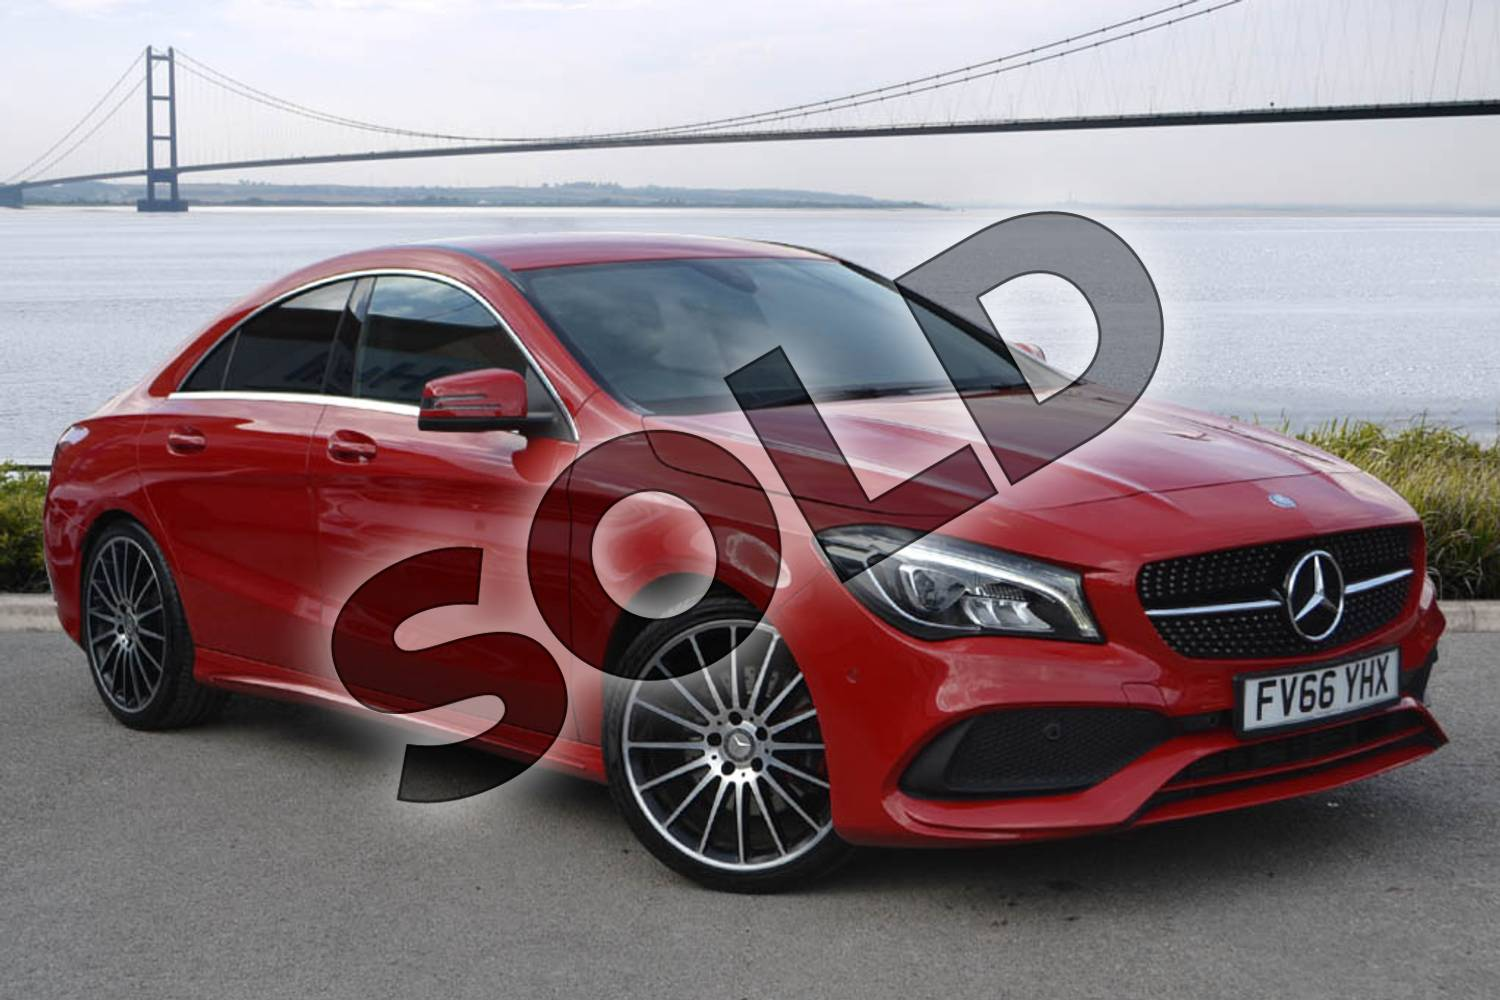 2017 Mercedes-Benz CLA Coupe CLA 250 AMG 4dr Tip Auto in jupiter red at Mercedes-Benz of Hull